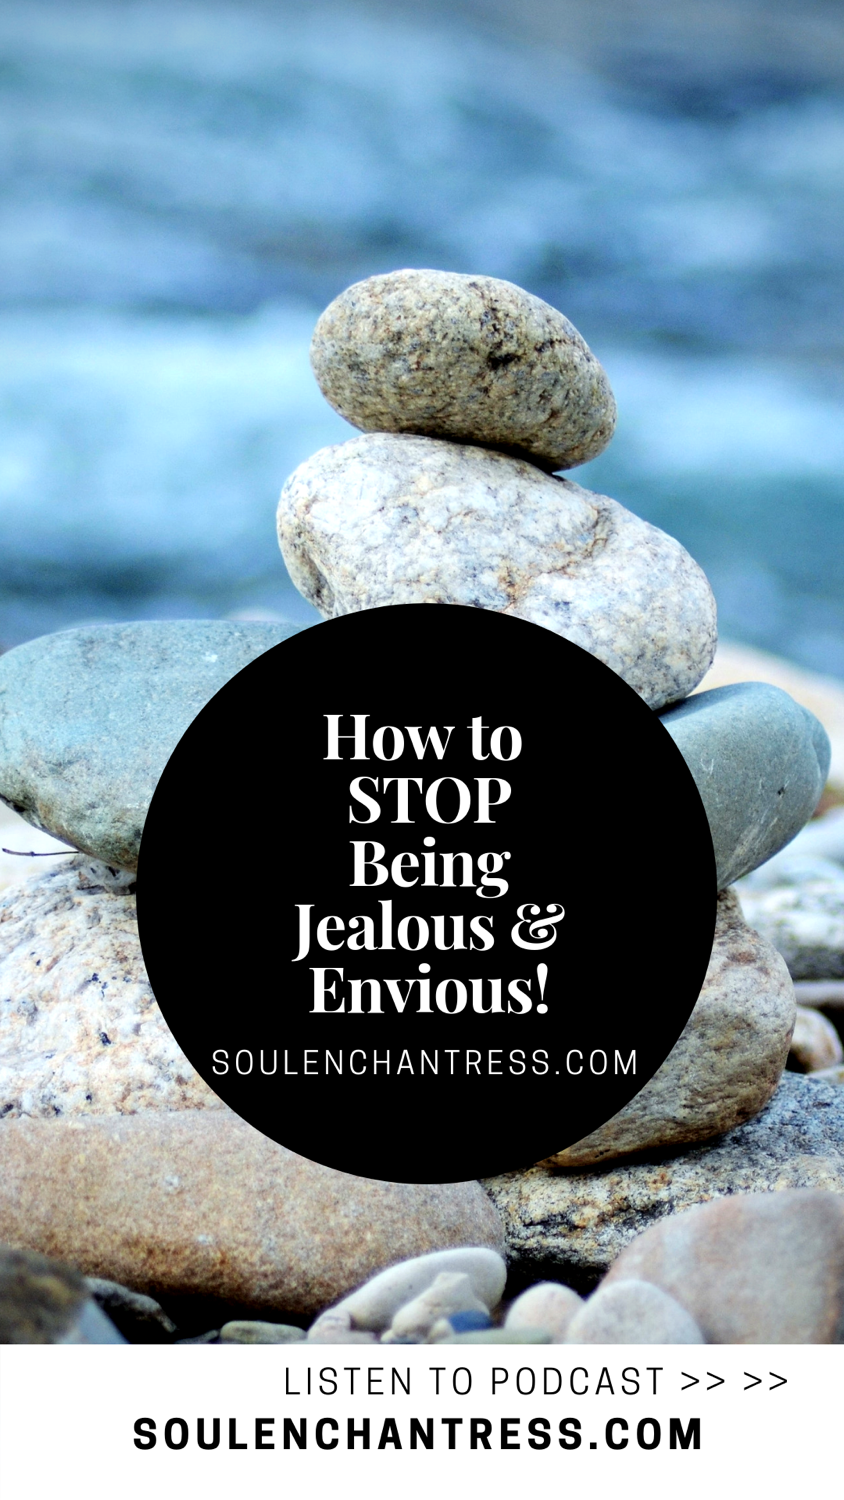 how to stop being jealous, soul enchantress, attracting abundance